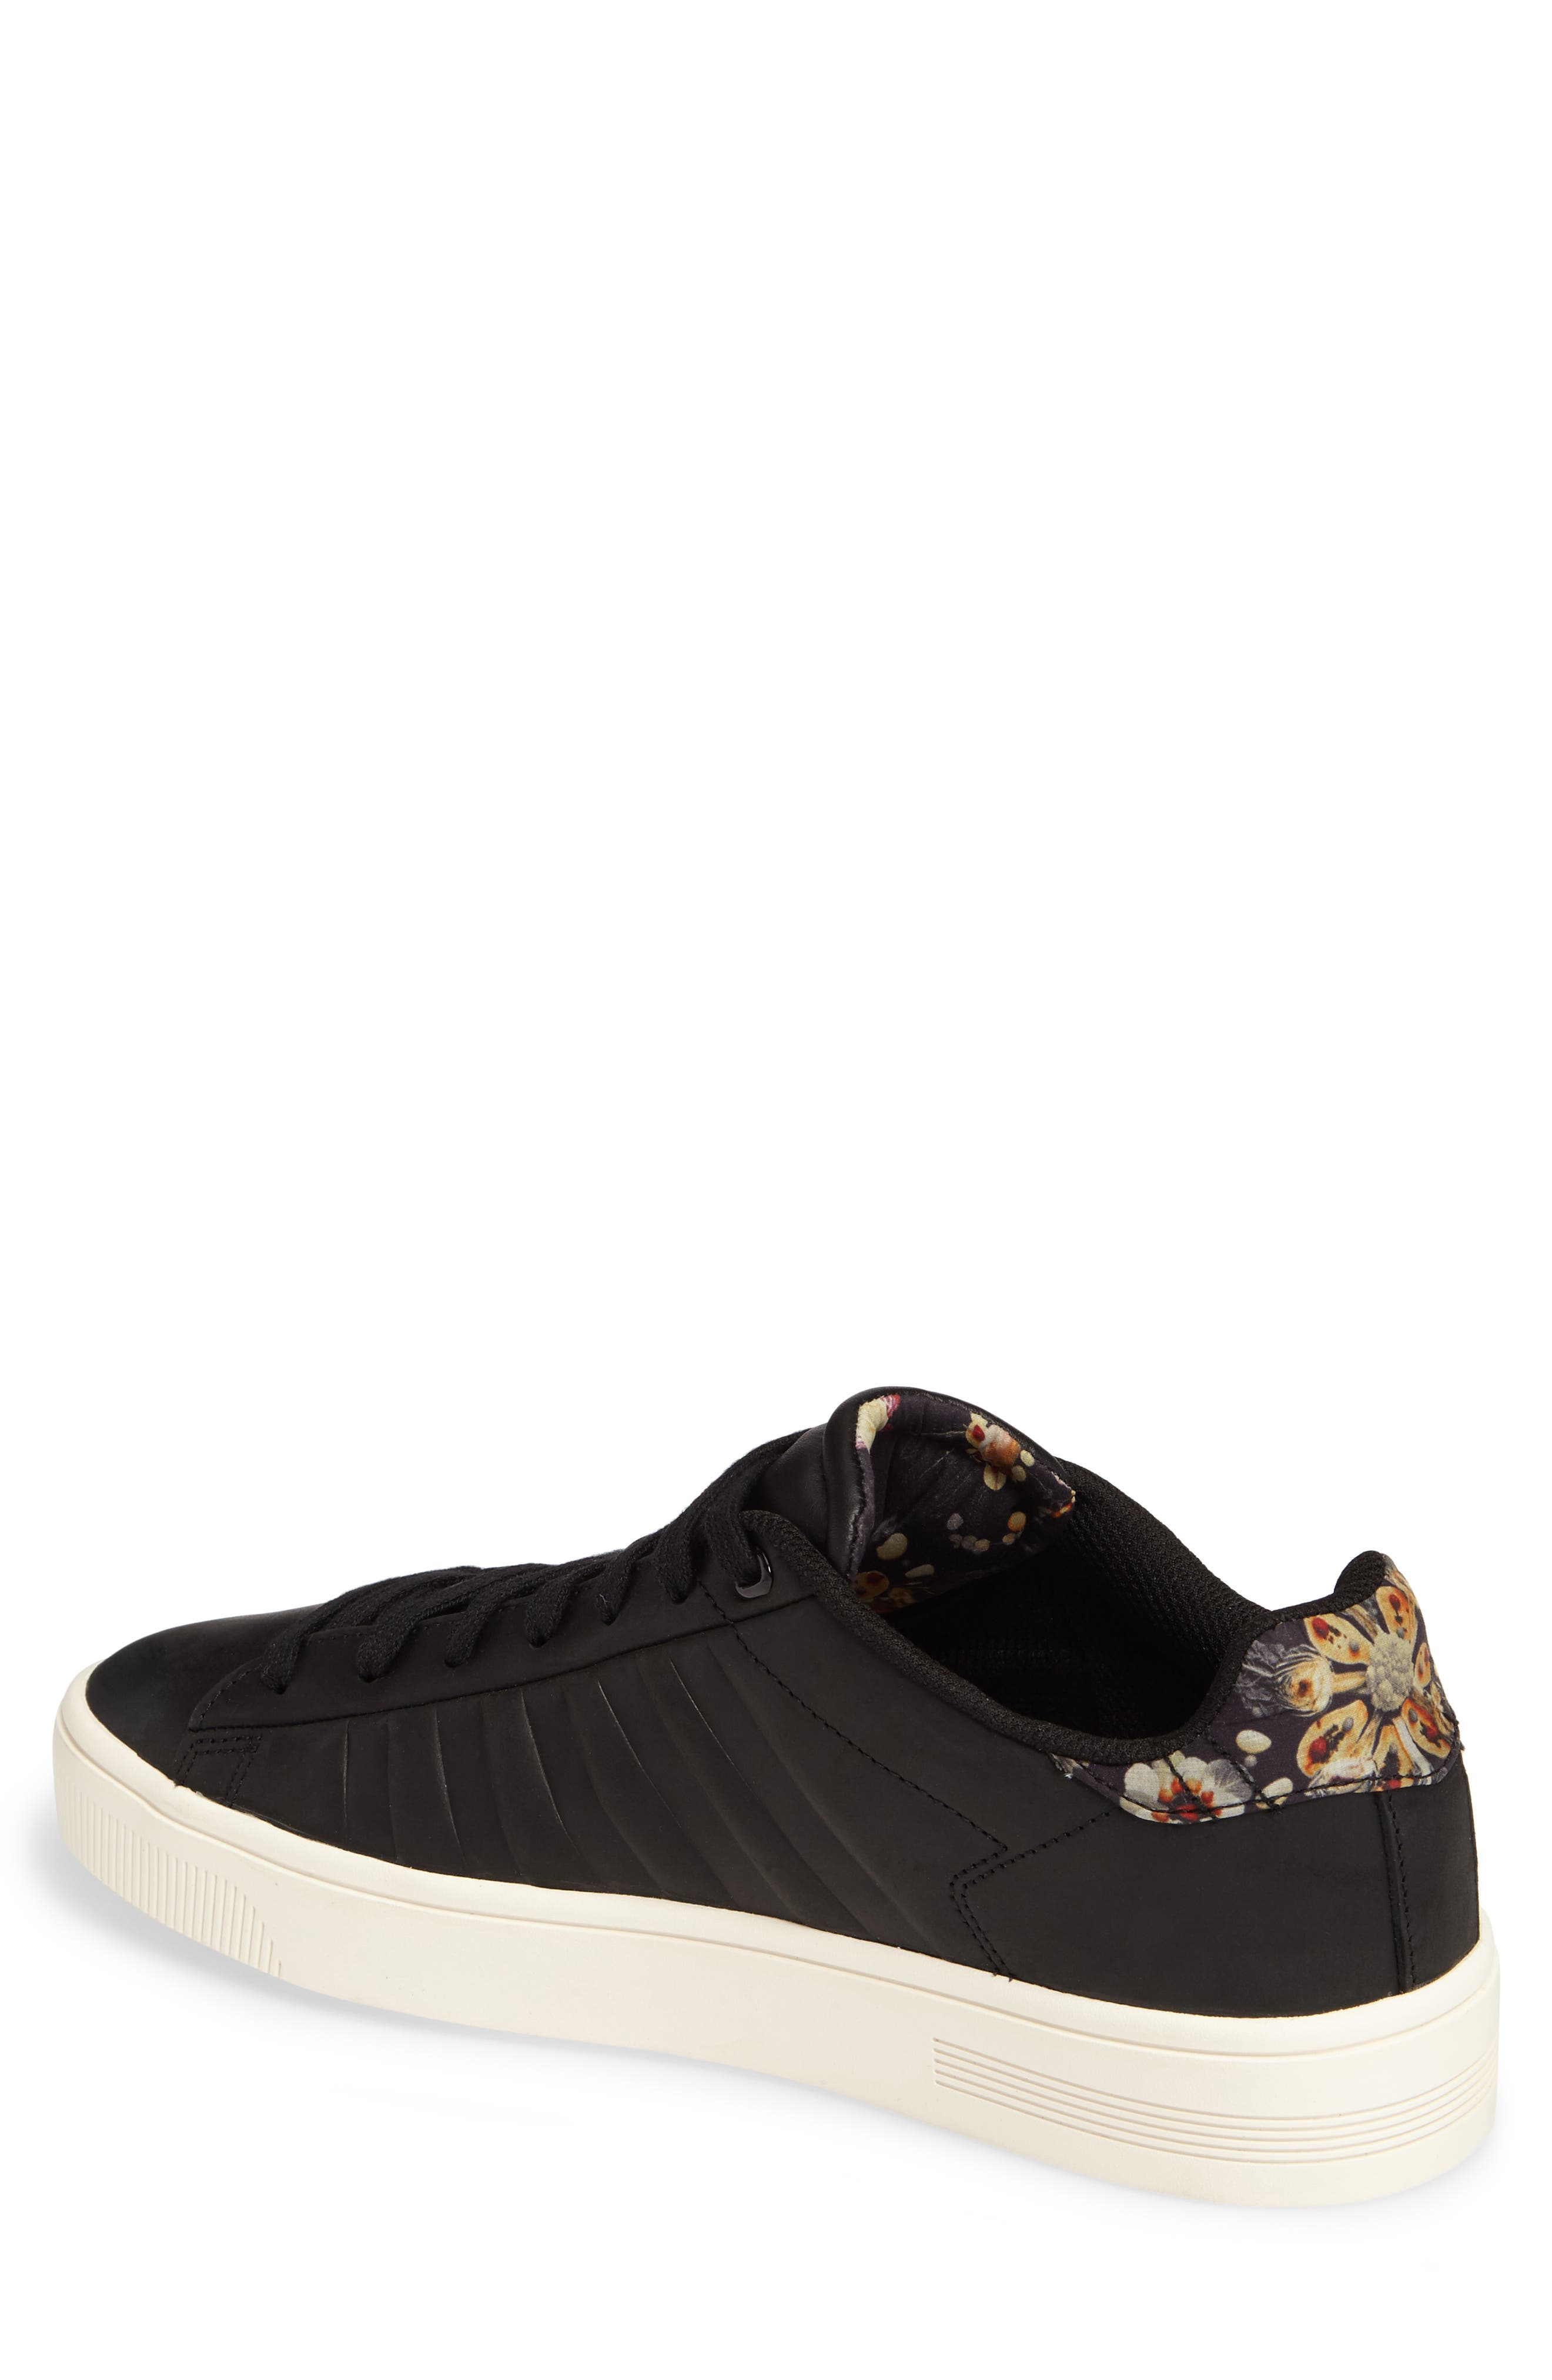 Court Frasco<sup>™</sup> Liberty Sneaker,                             Alternate thumbnail 2, color,